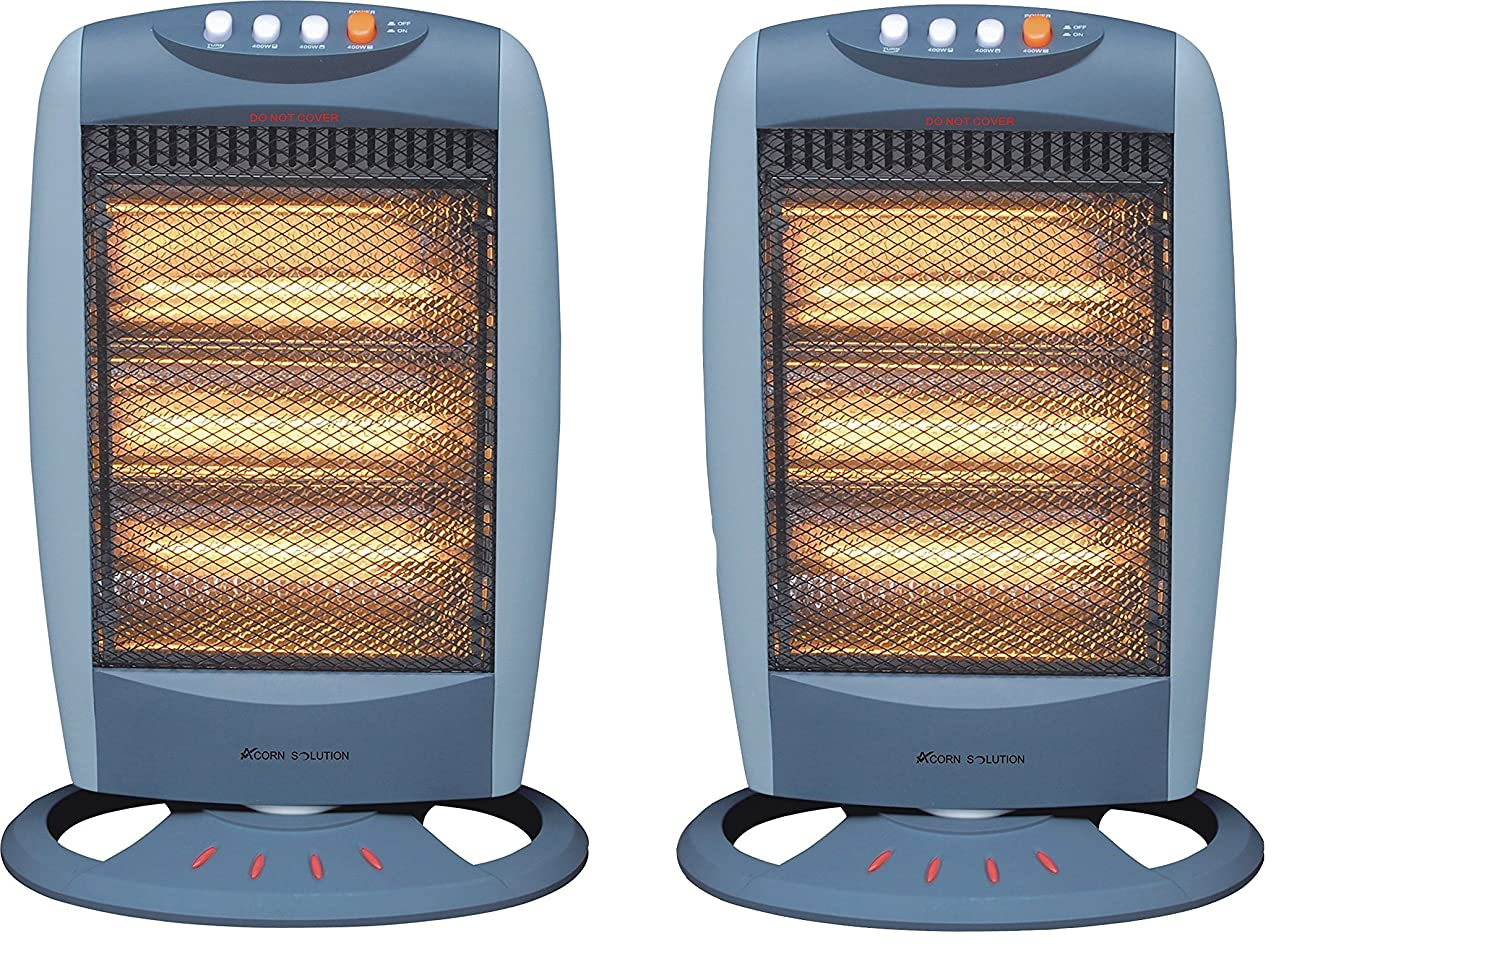 Acorn pack of 2 Oscillating Halogen Heater - 1200W - Tilt Safety Cut Off AcornSolution